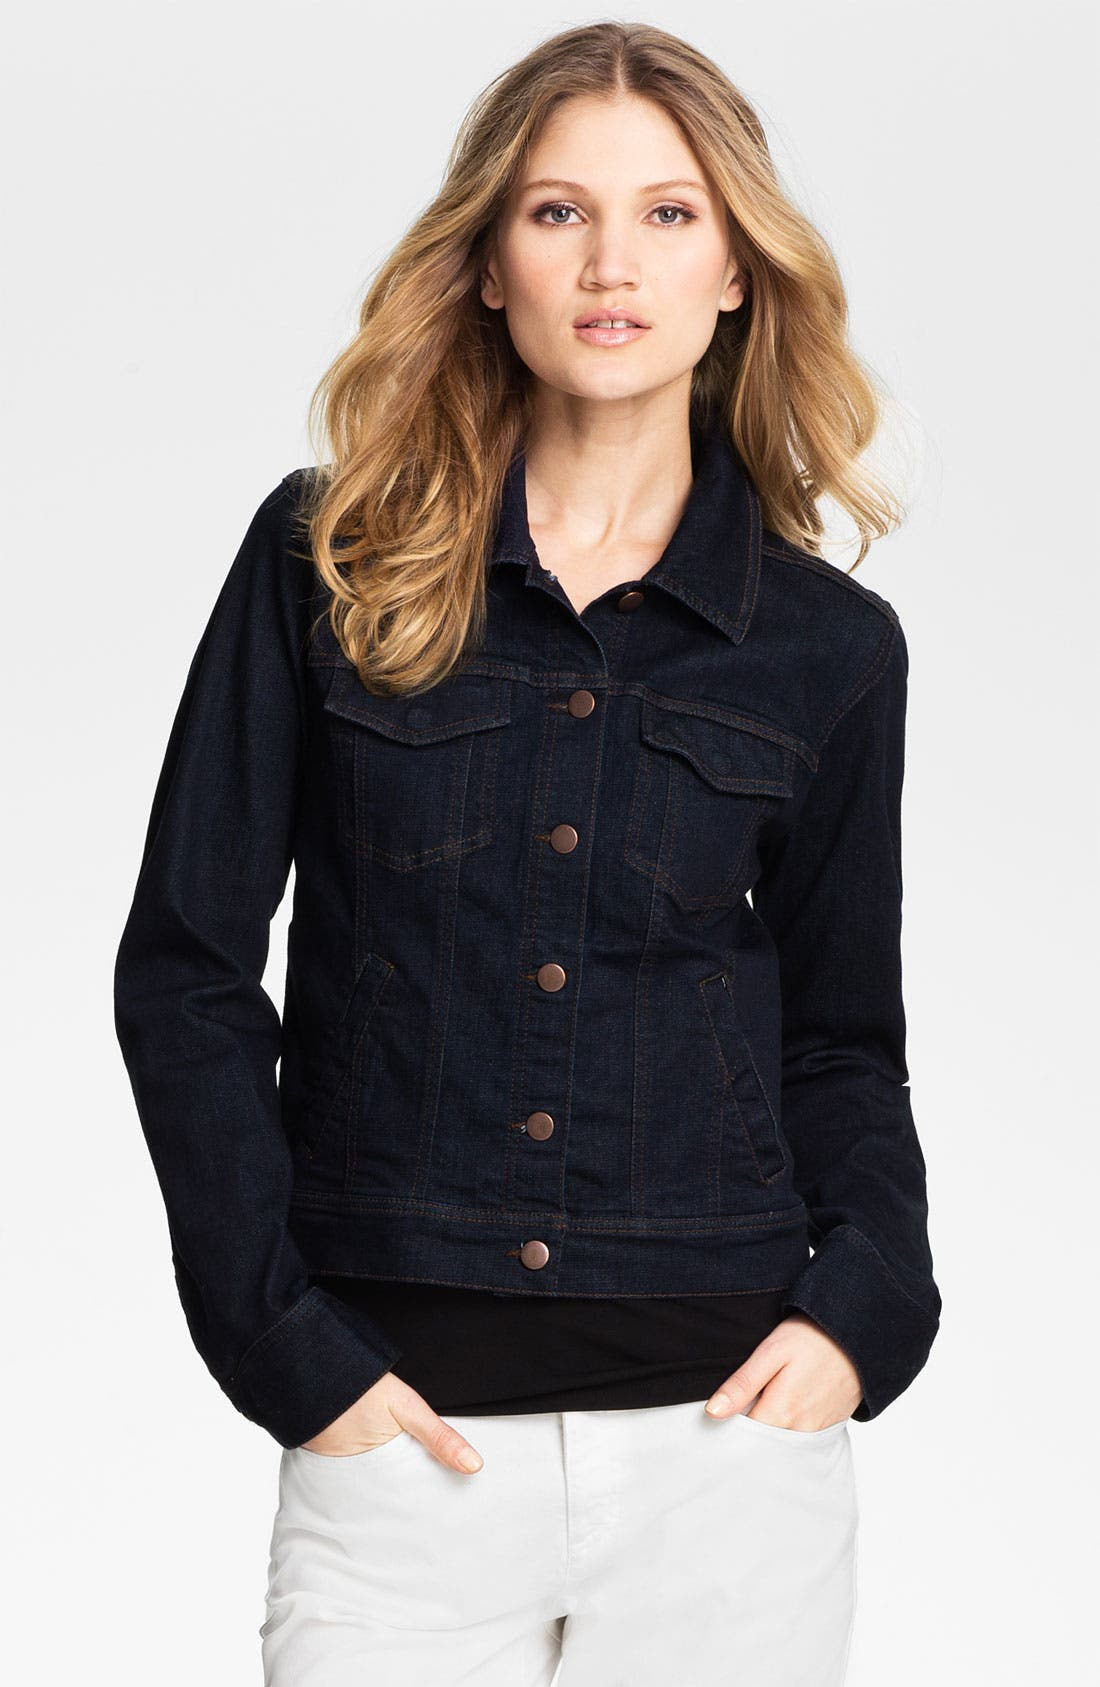 Organic Cotton Blend Denim Jacket,                             Main thumbnail 1, color,                             Indigo